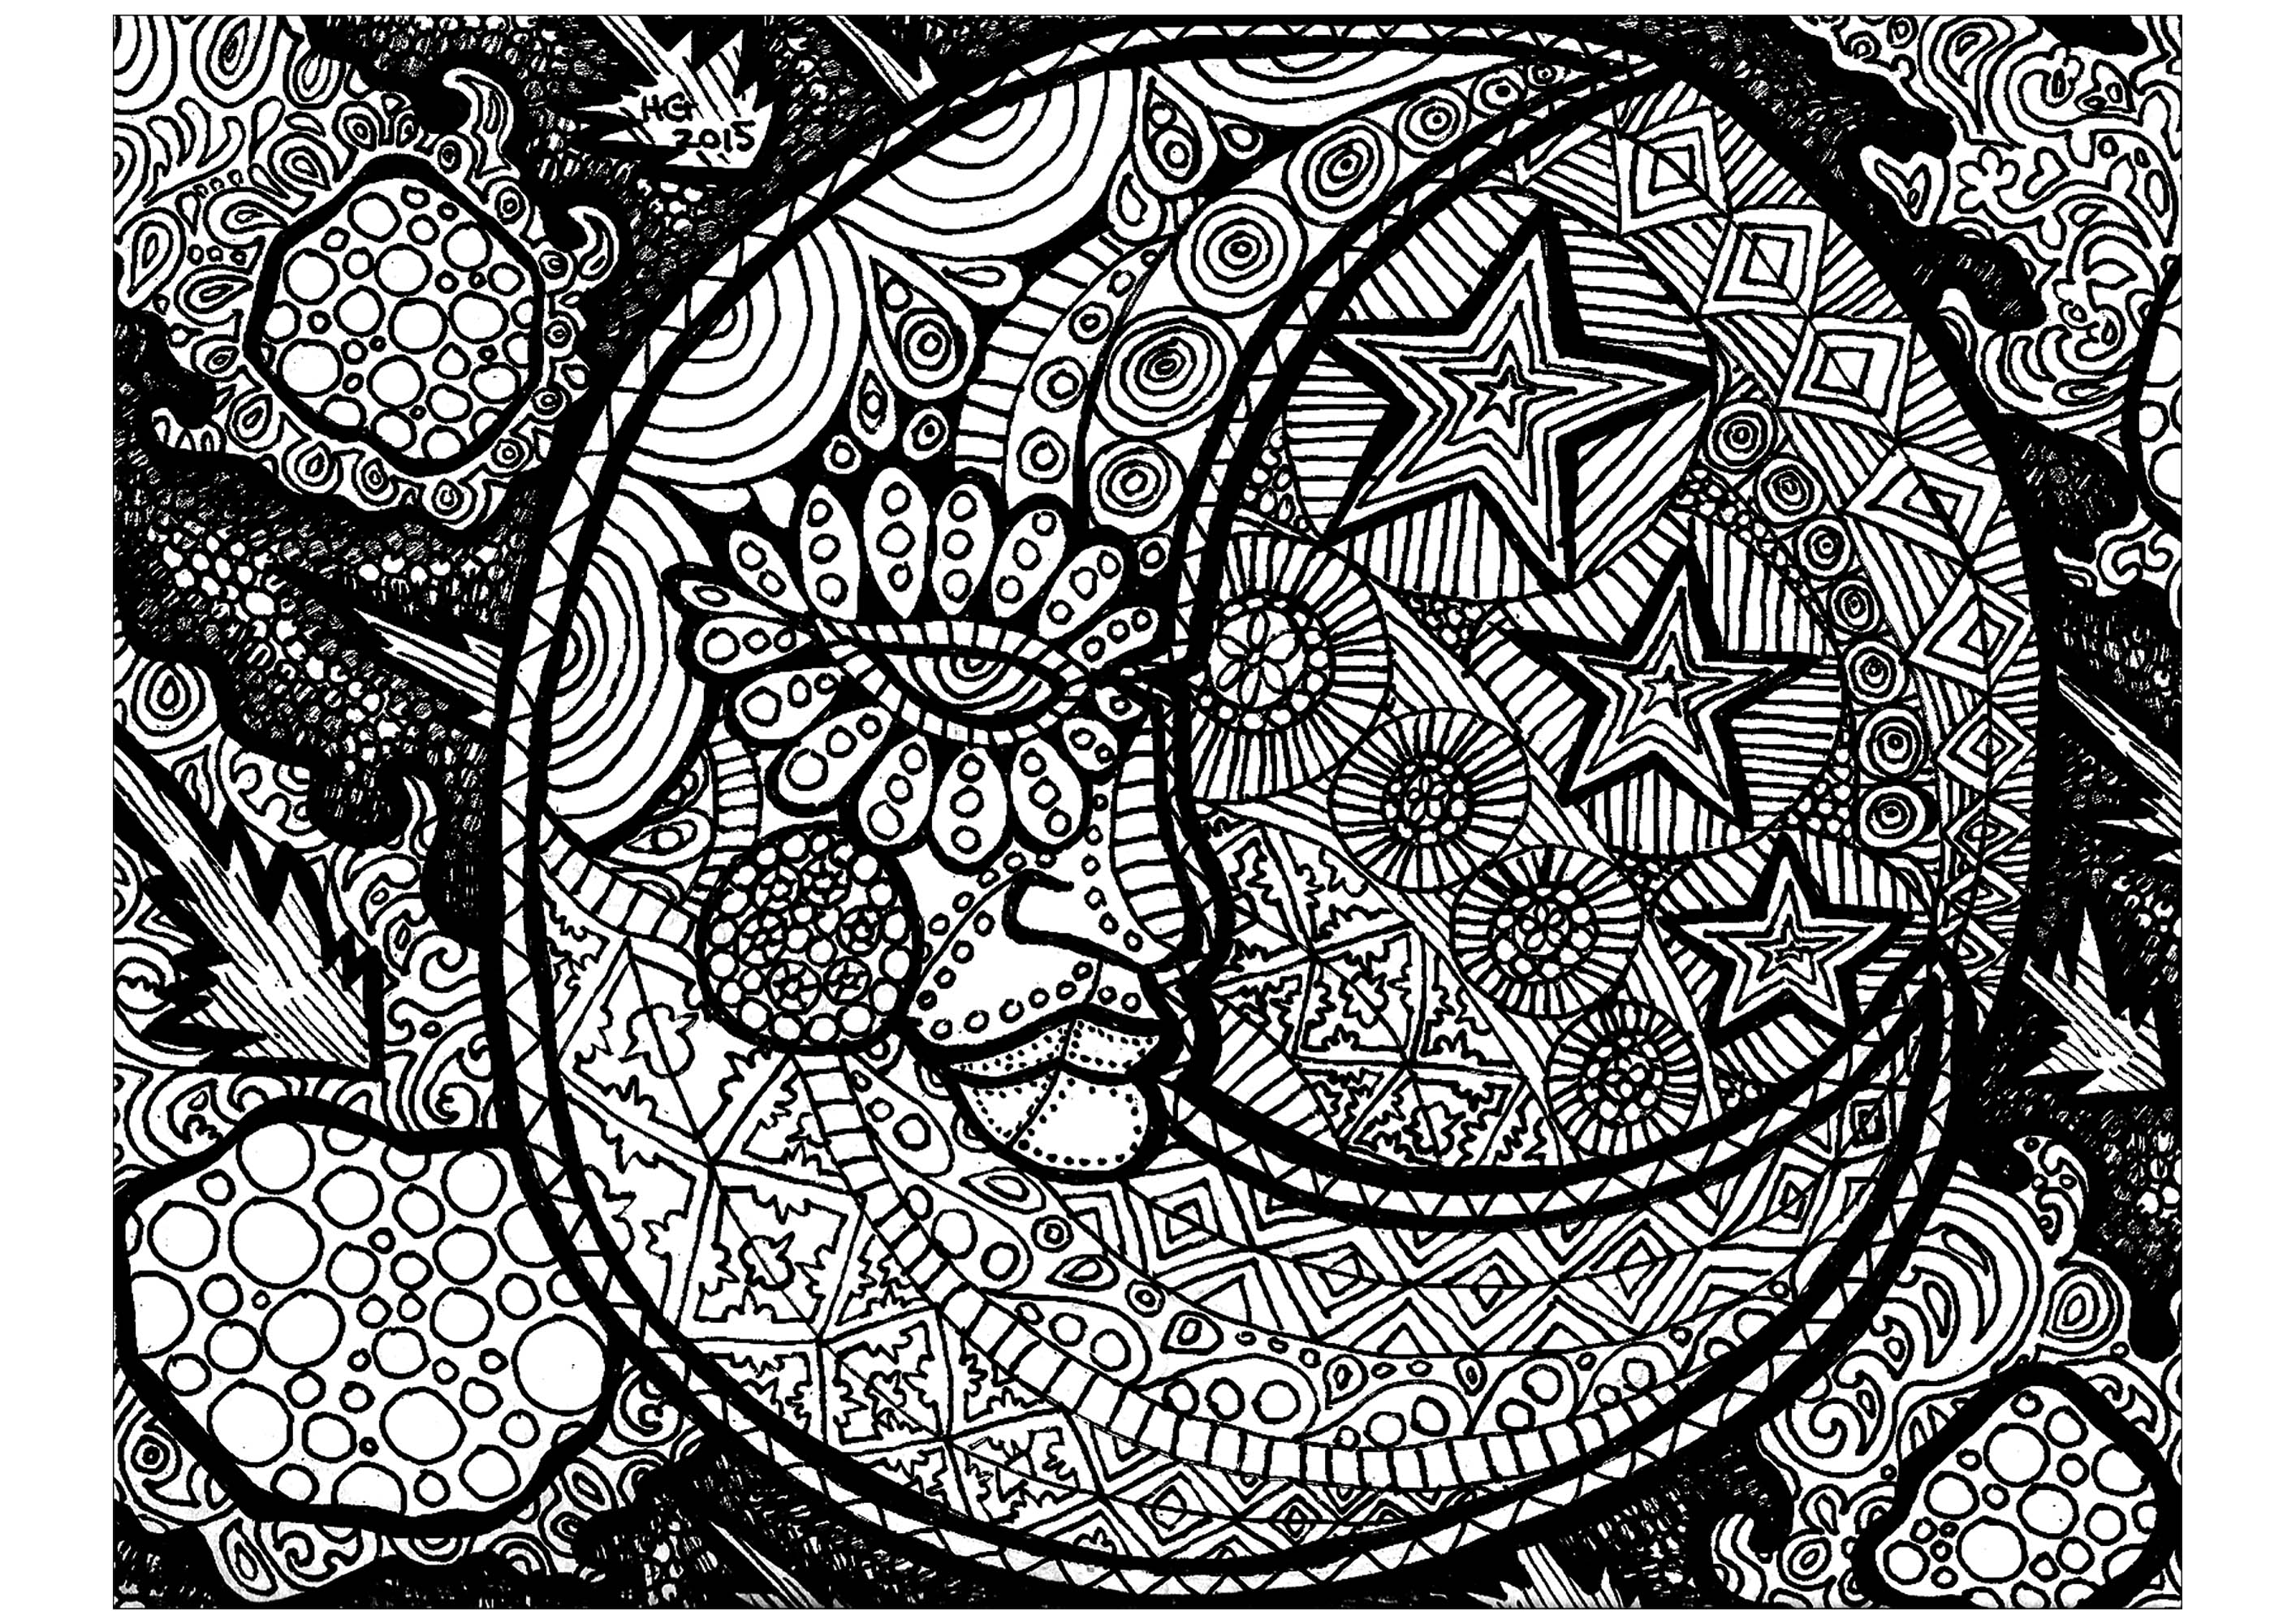 patterns for colouring for adults adult coloring pages patterns coloring pages for kids for patterns adults colouring for